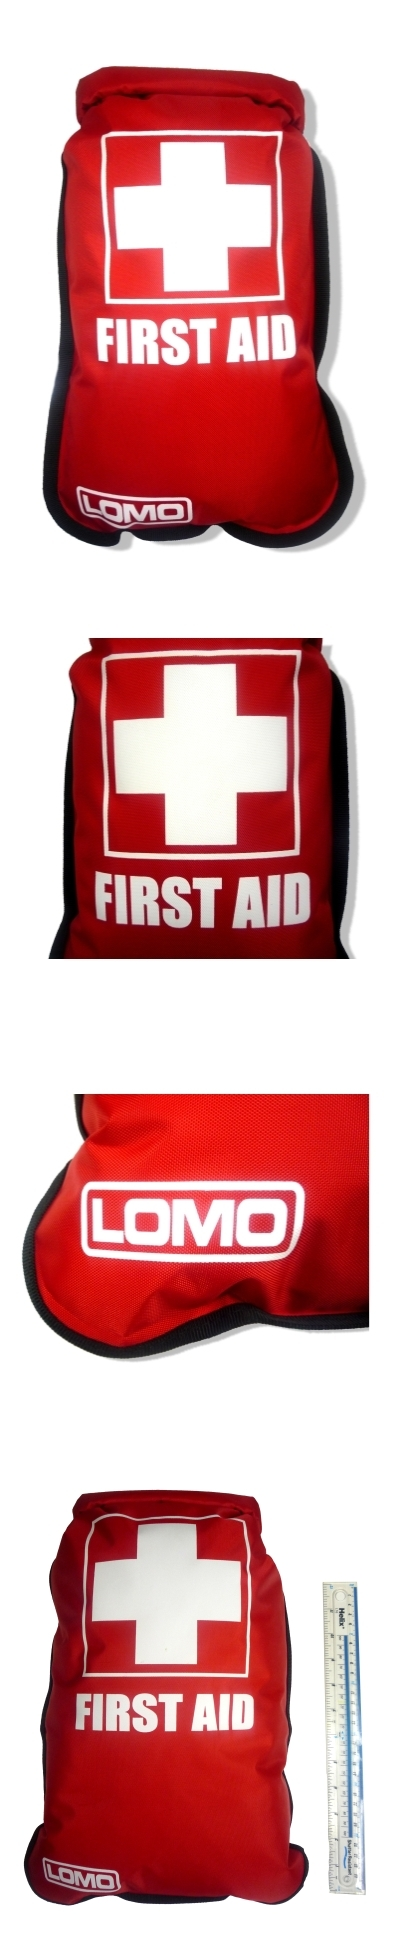 First Aid Dry Bag - _first-aid-10l-lightweight-dry-bag-1328706156